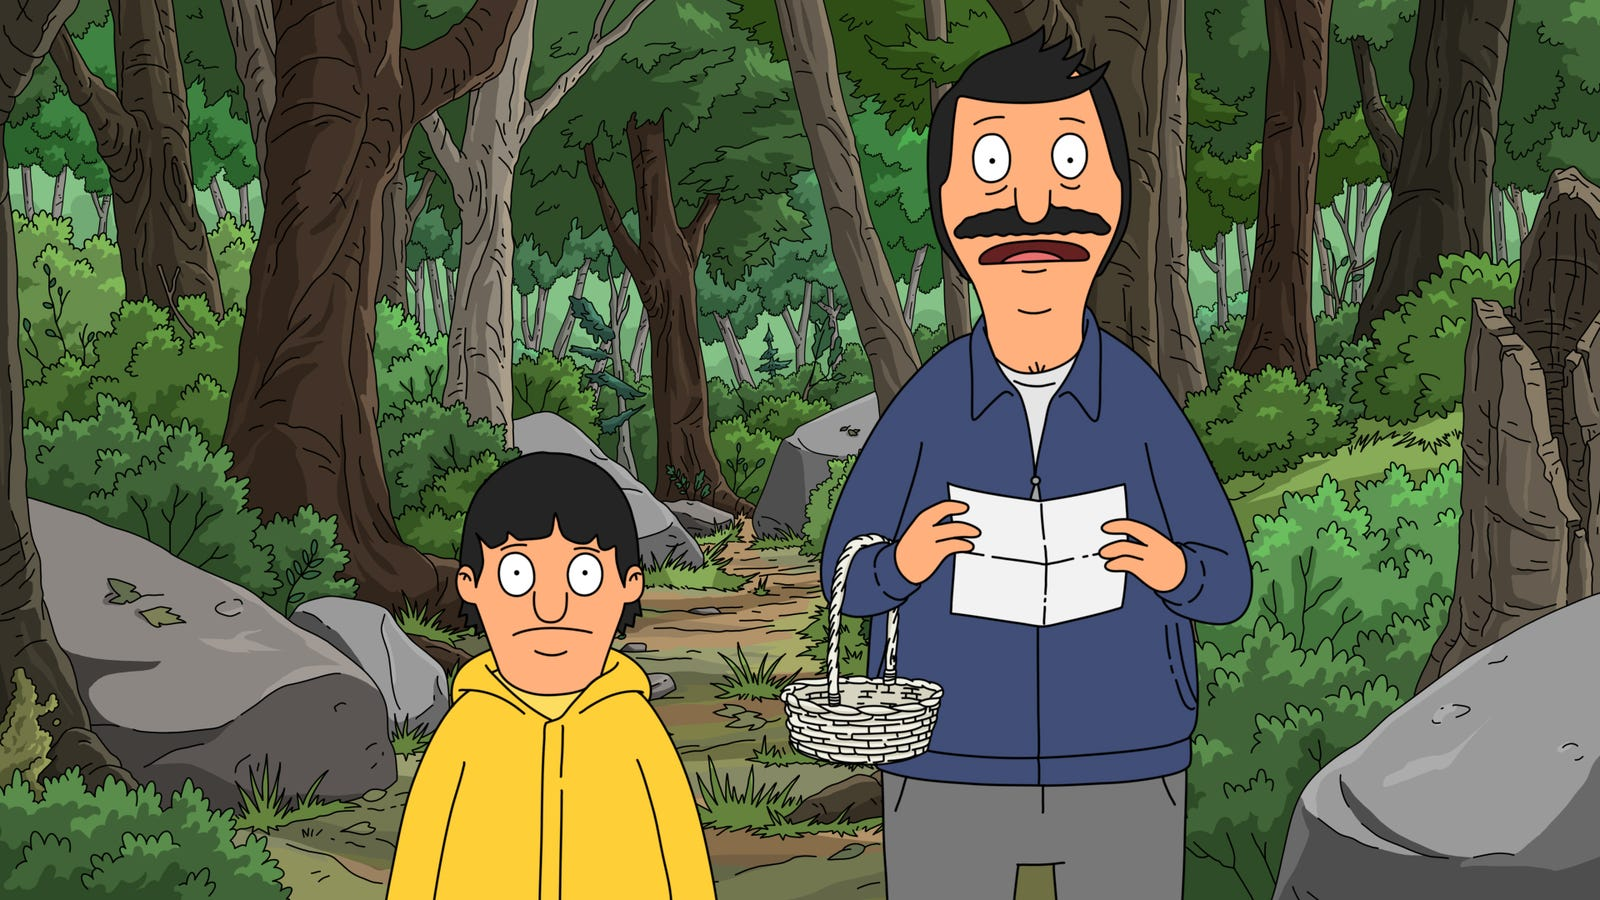 A traditional yet entertaining Bob's Burgers finds the magic in a mushroom hunt